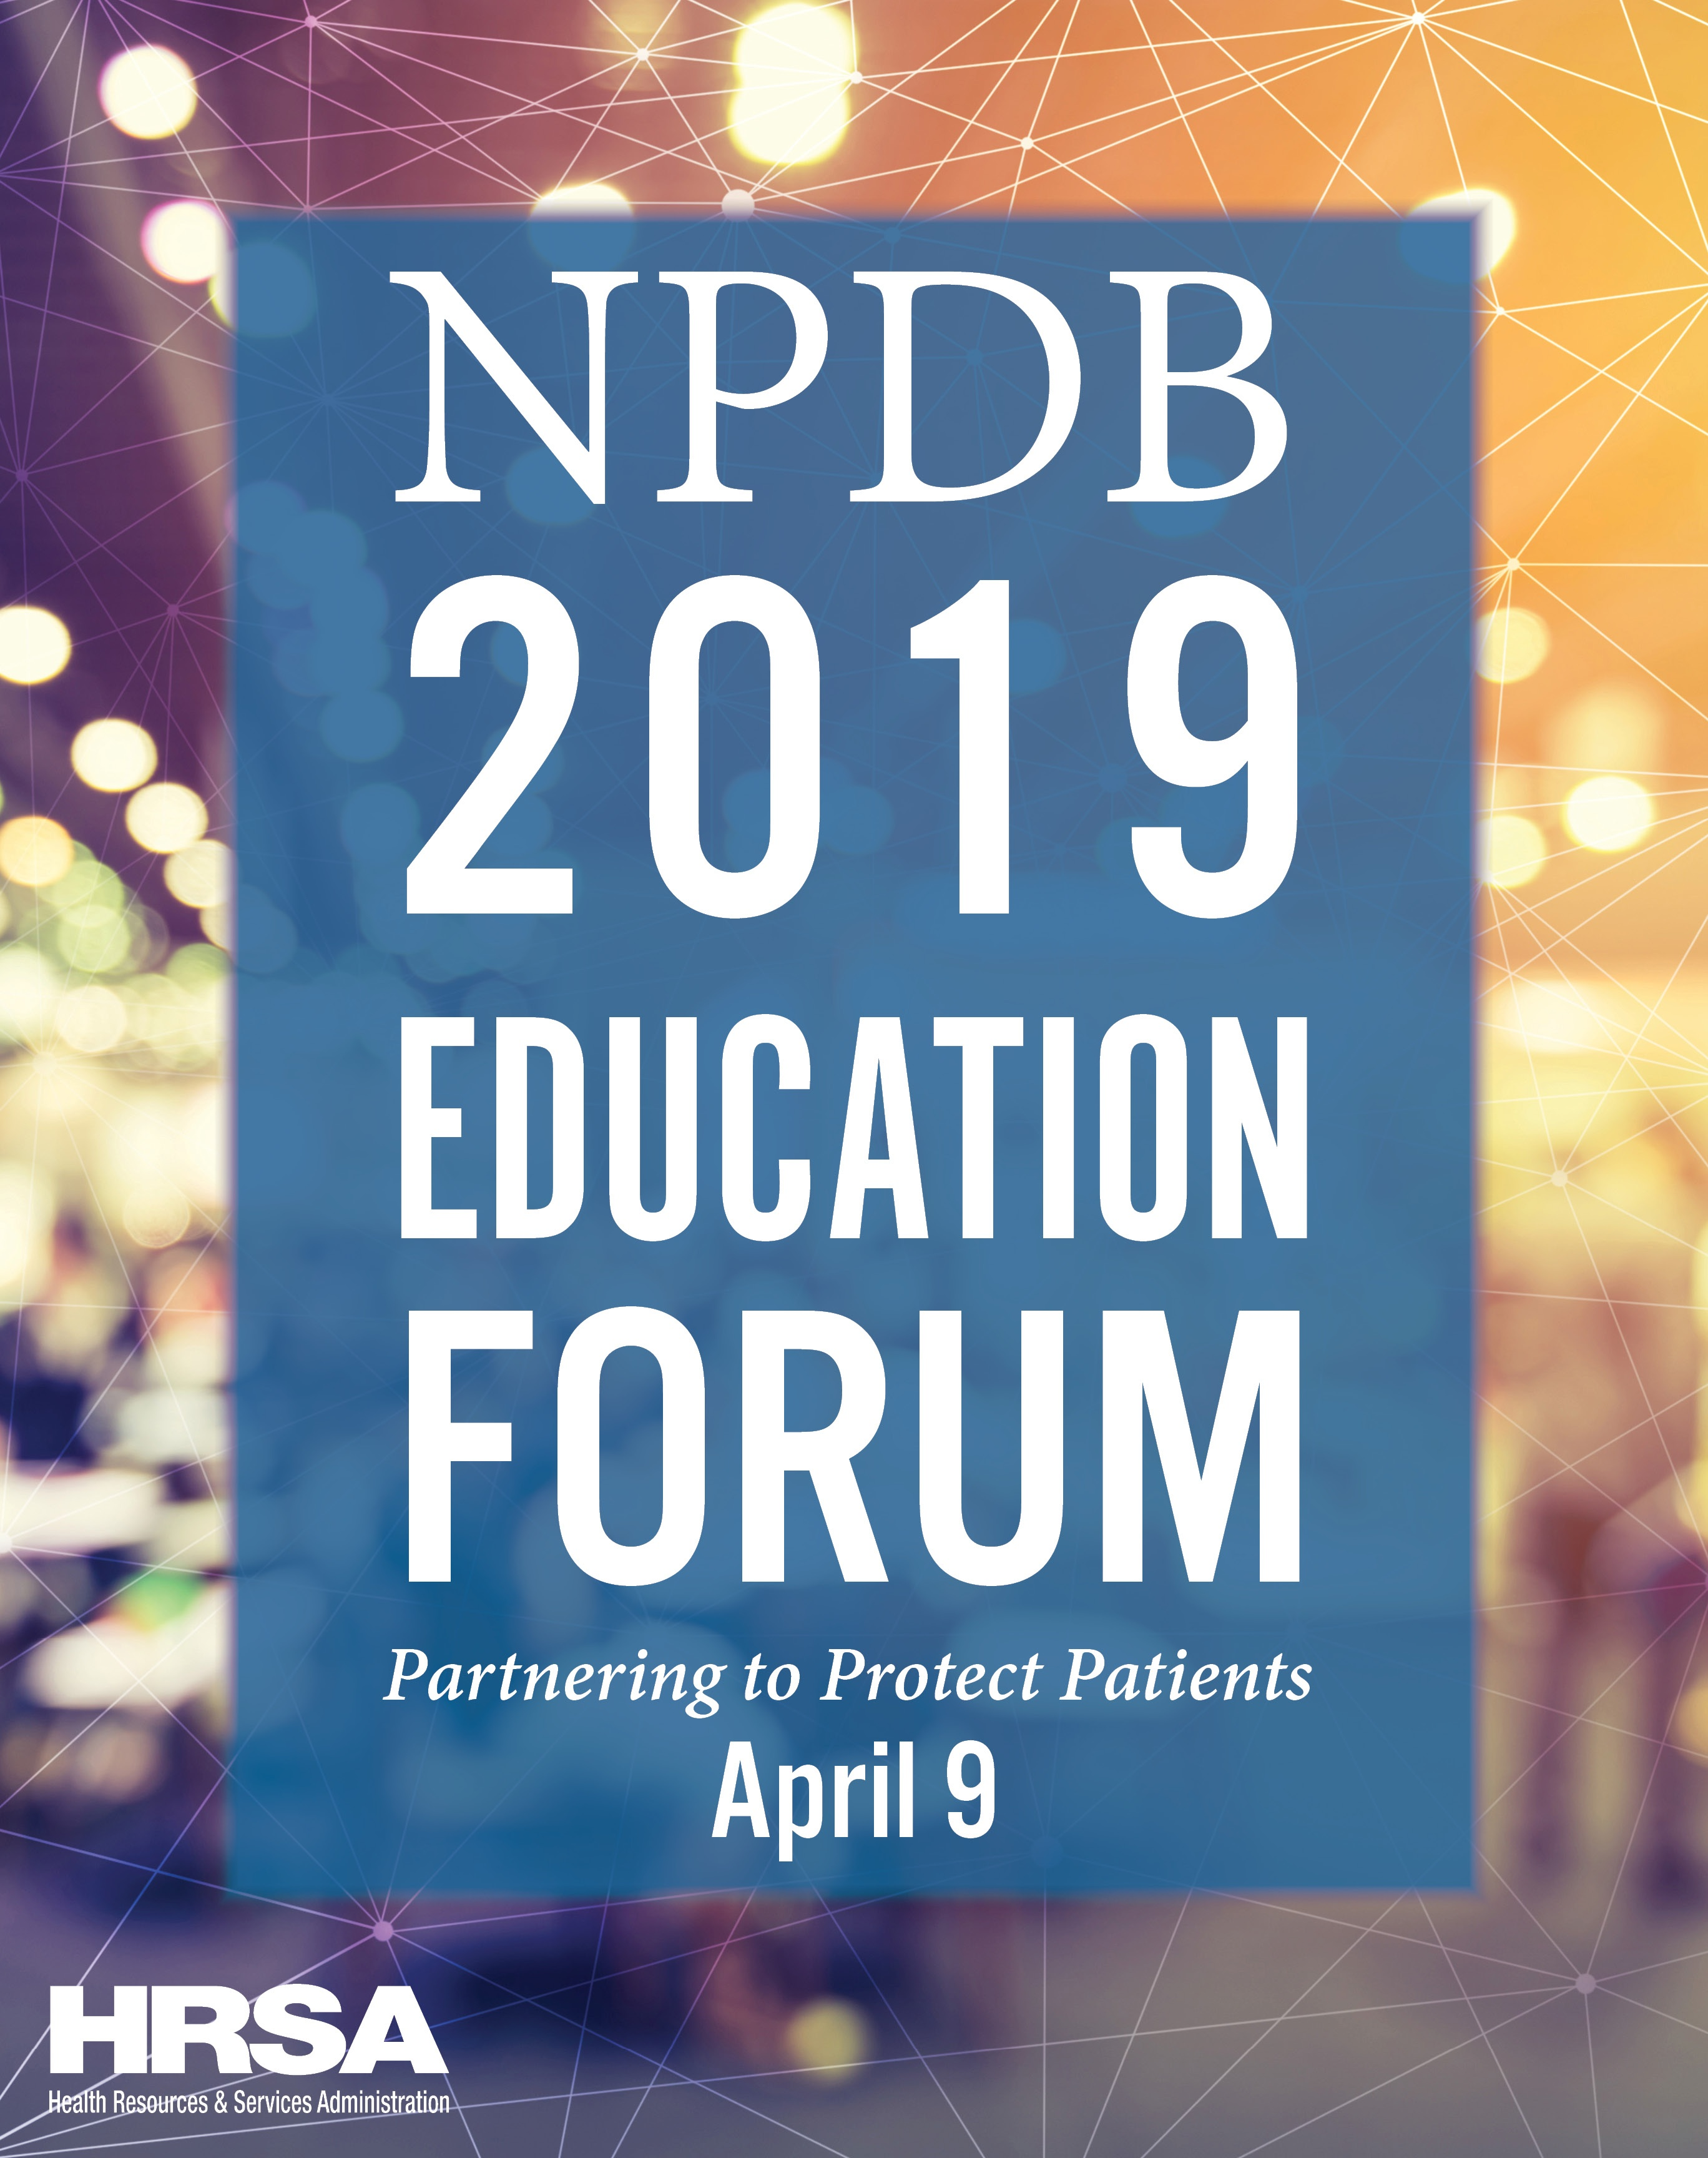 NPDB 2019 Education Forum - April 9, 2018 - HRSA